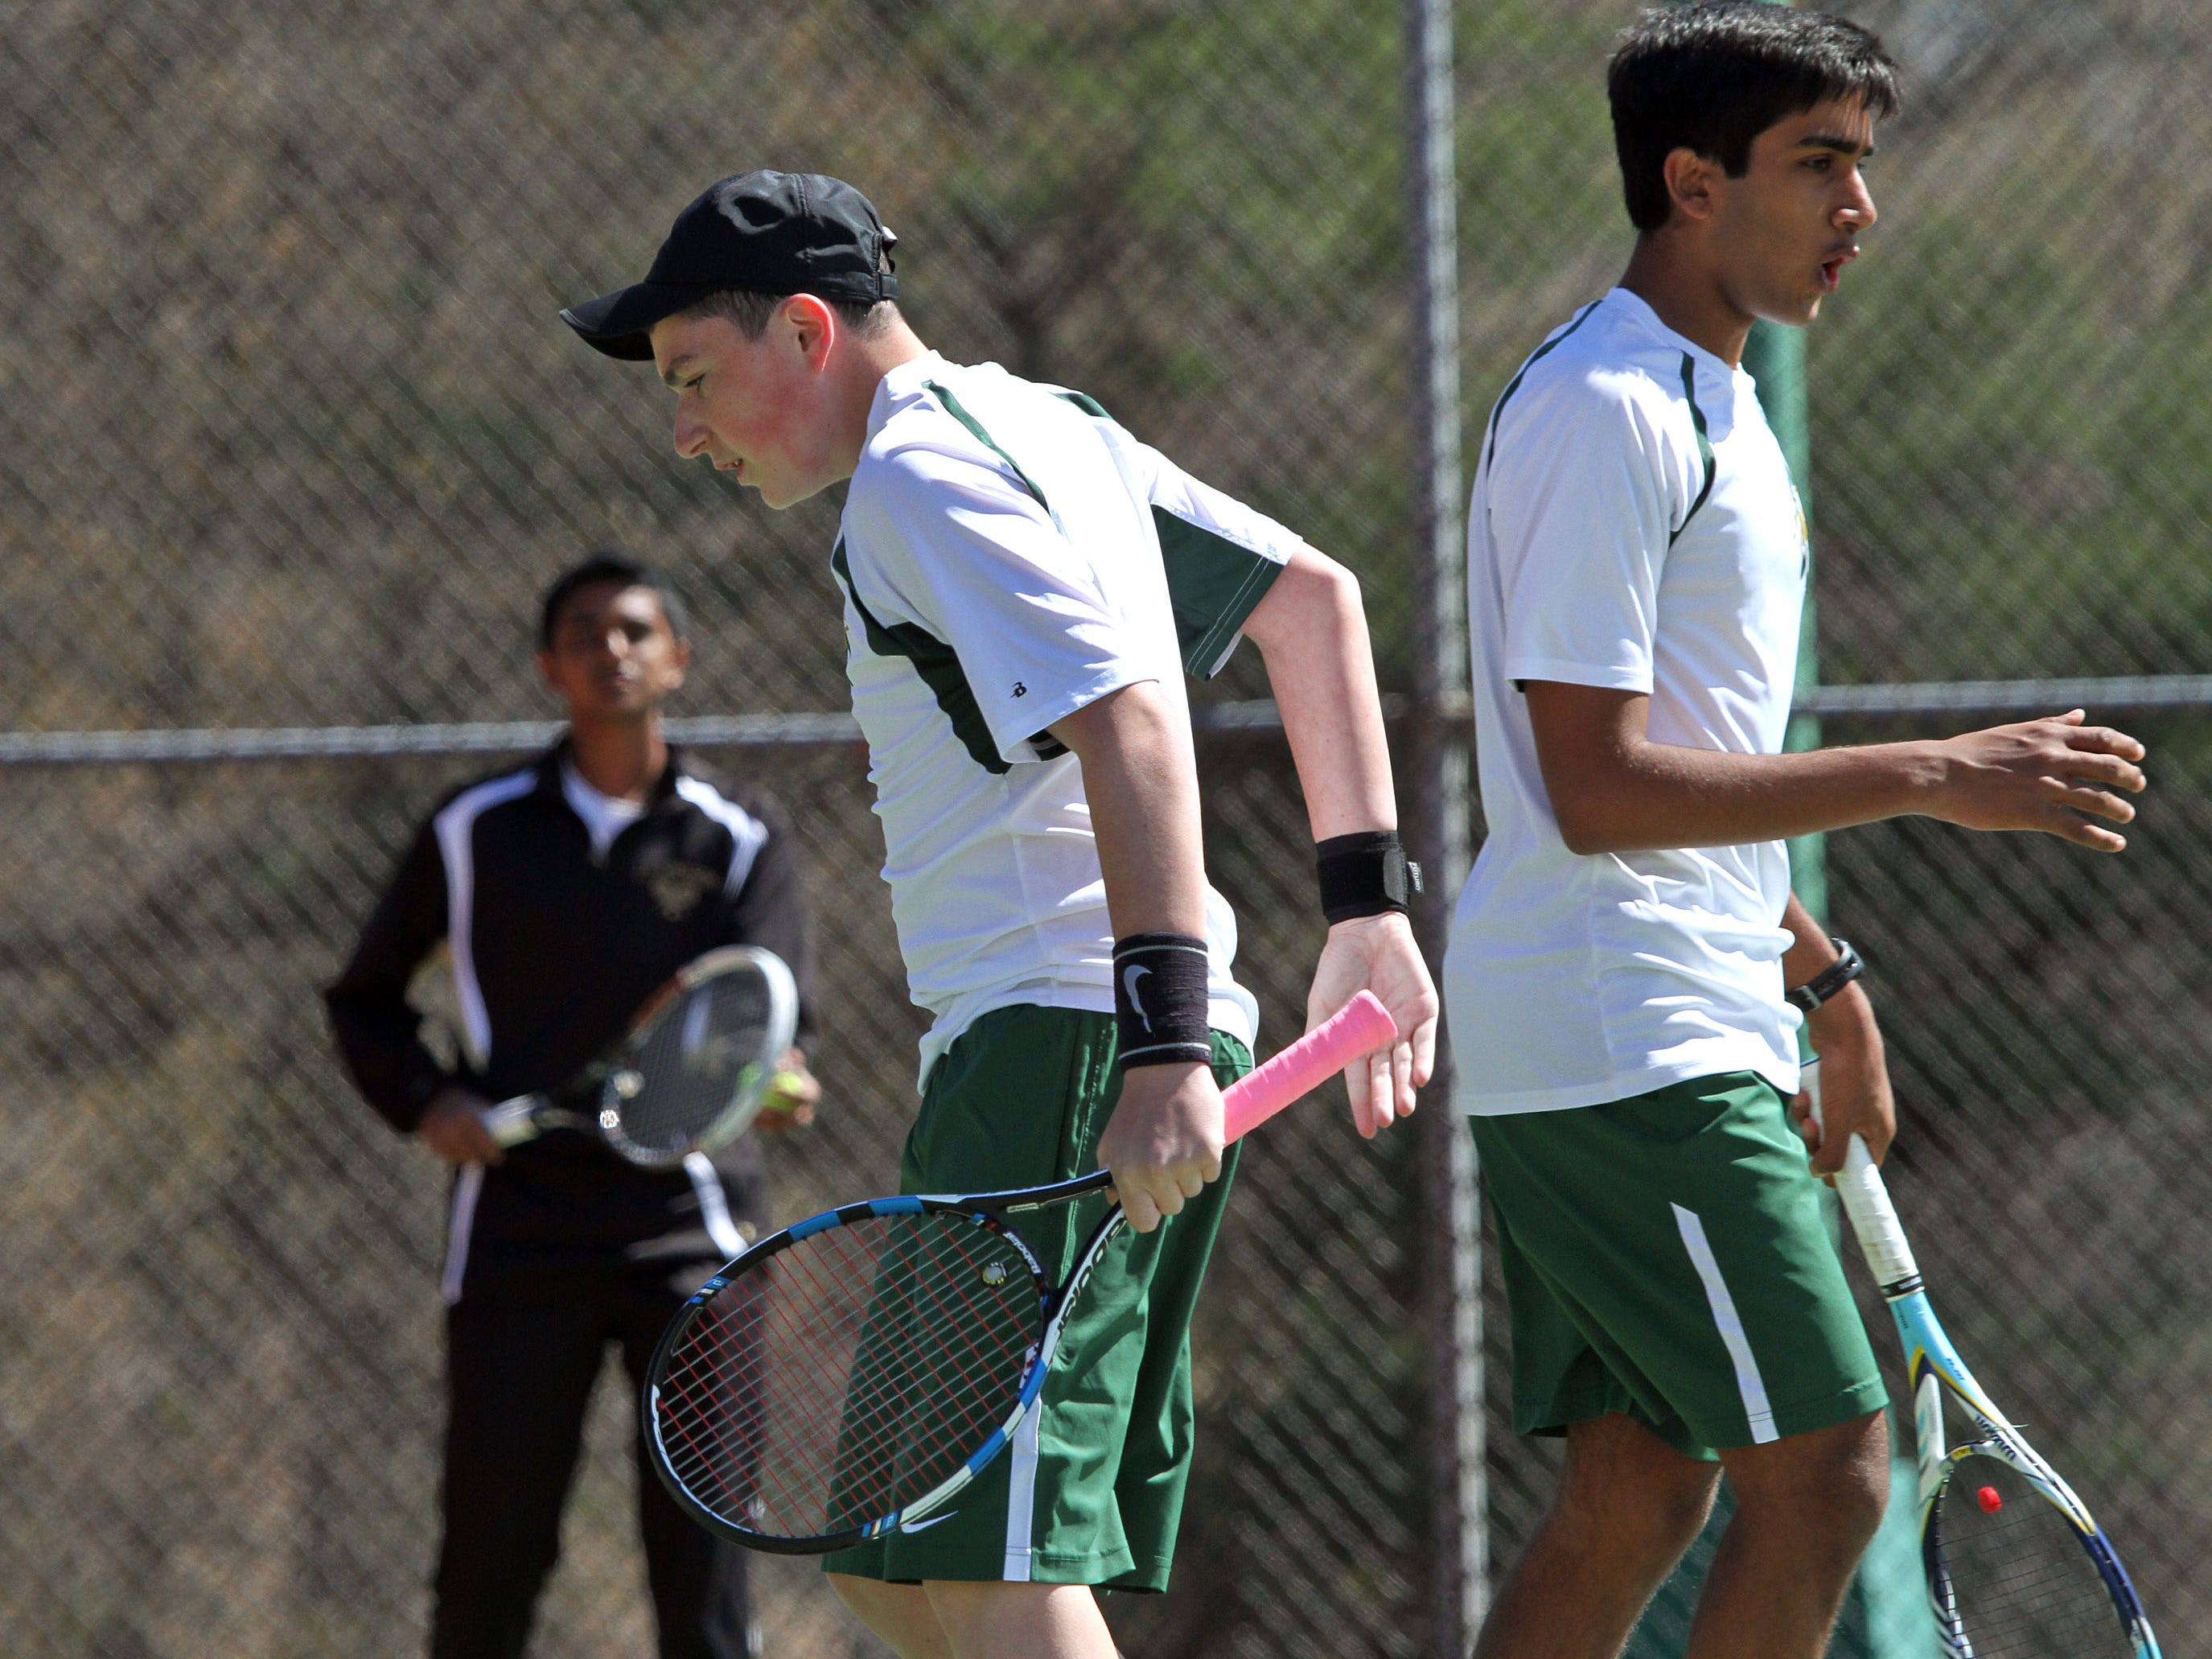 J.P.Stevens' First Doubles team Alex Telson, left, and Gouttham Chandrasekar celeebrate a point during their match at the GMC tennis tournament finals at Thomas Edison Park in Edison.